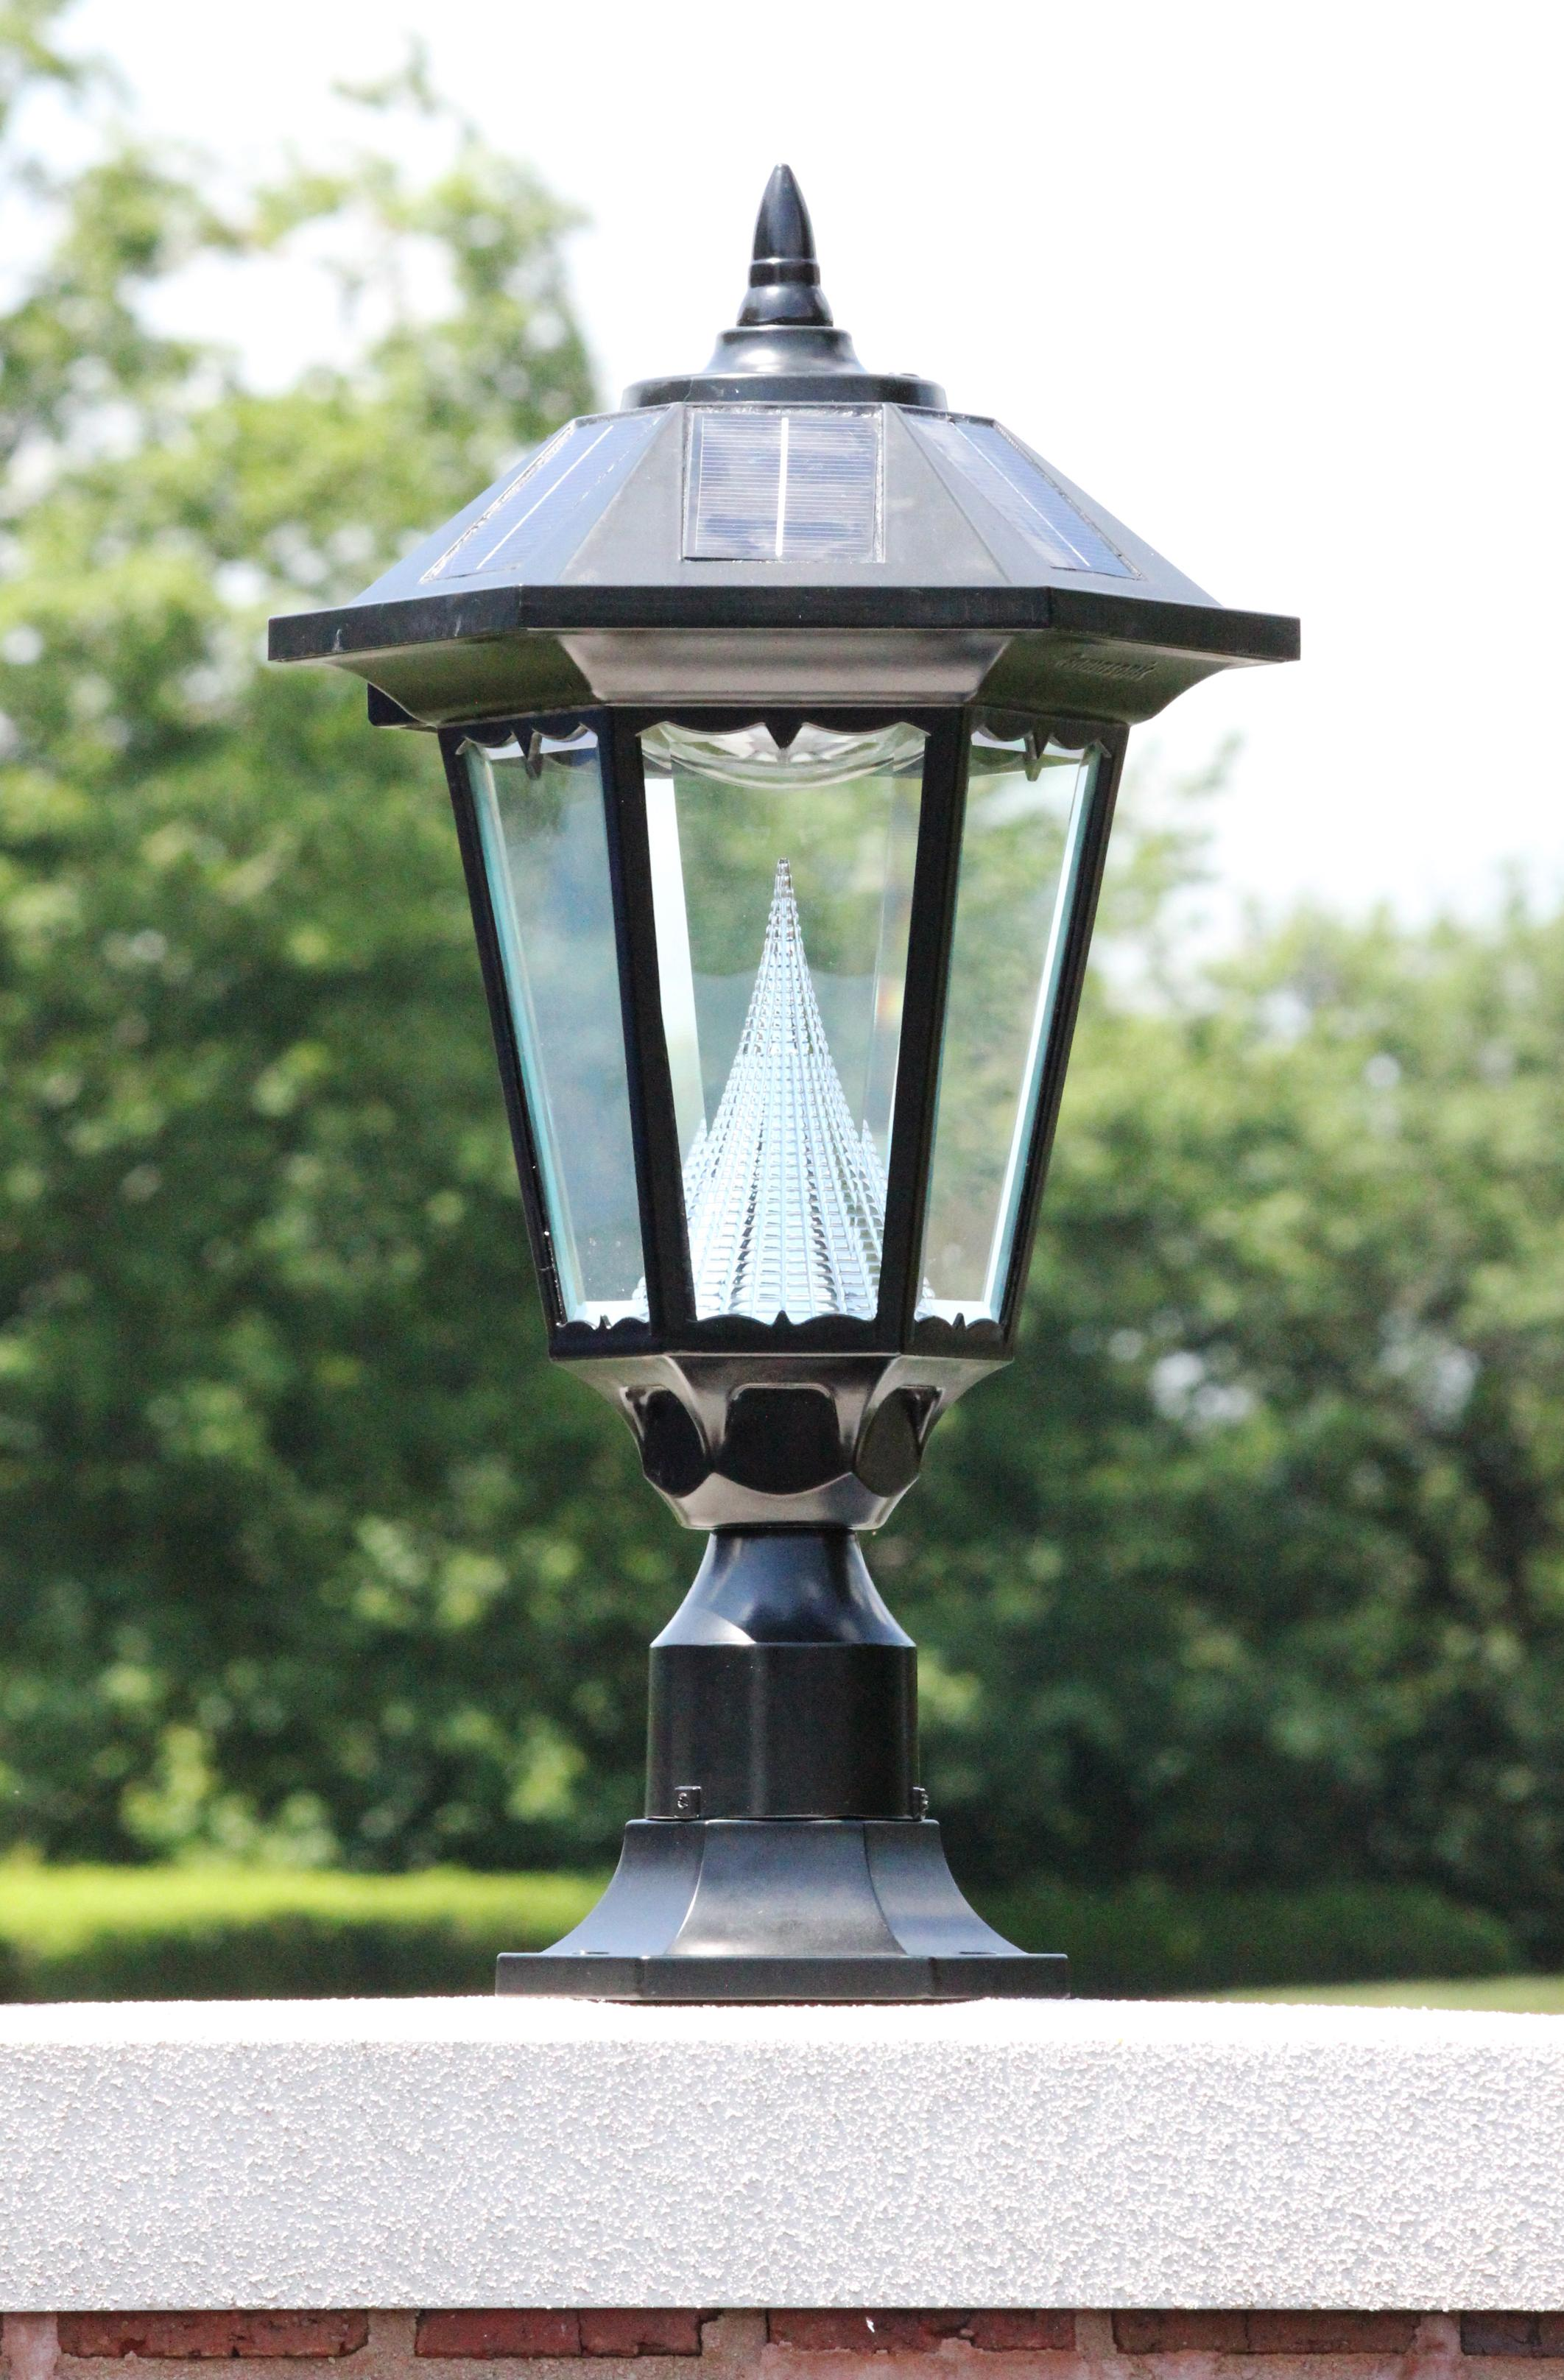 Amazon.com : Gama Sonic Windsor Solar Outdoor Post Light - Black ...